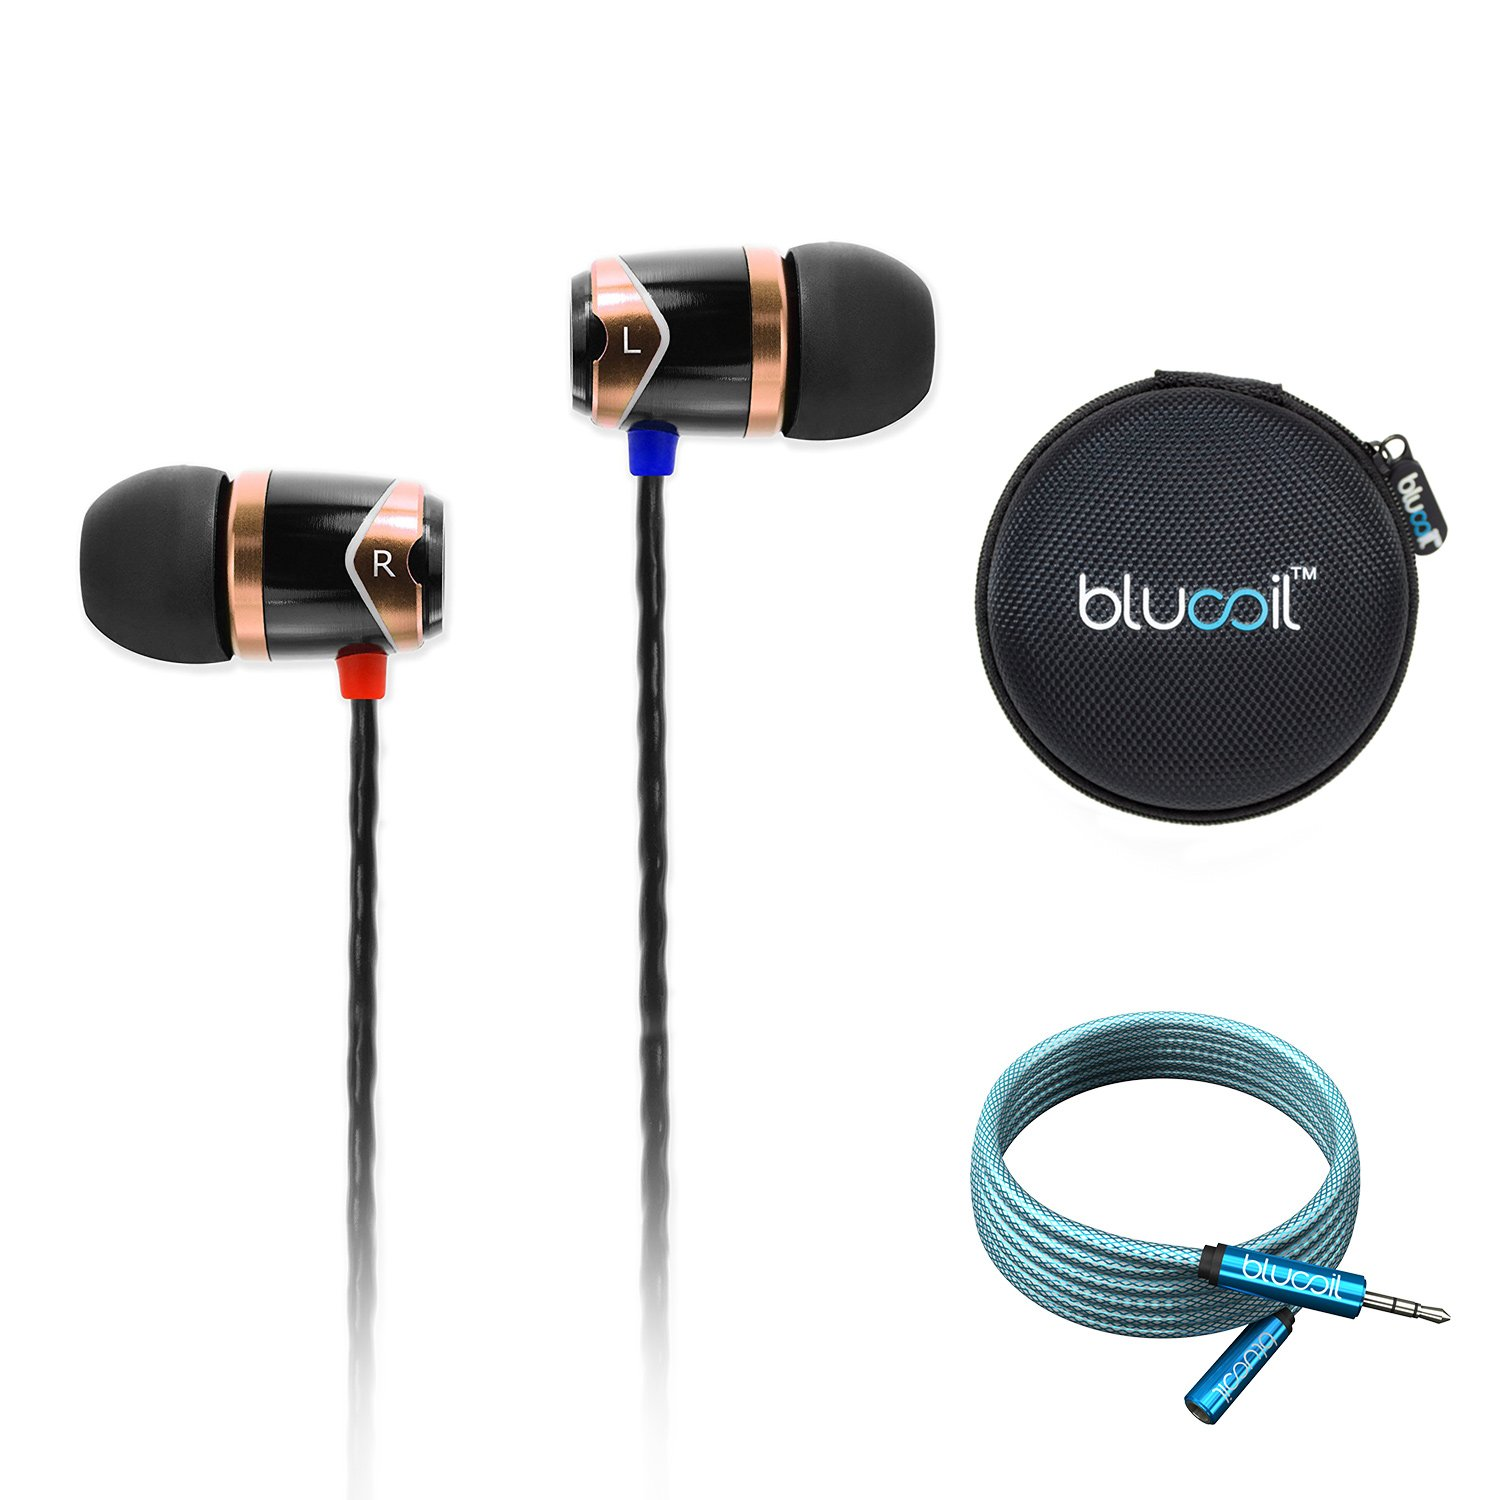 SoundMAGIC E10 Noise Isolating in-Ear Earphones (Gold) Bundle withBlucoil 6-Ft Extension Cable and Portable Earphone Hard Case